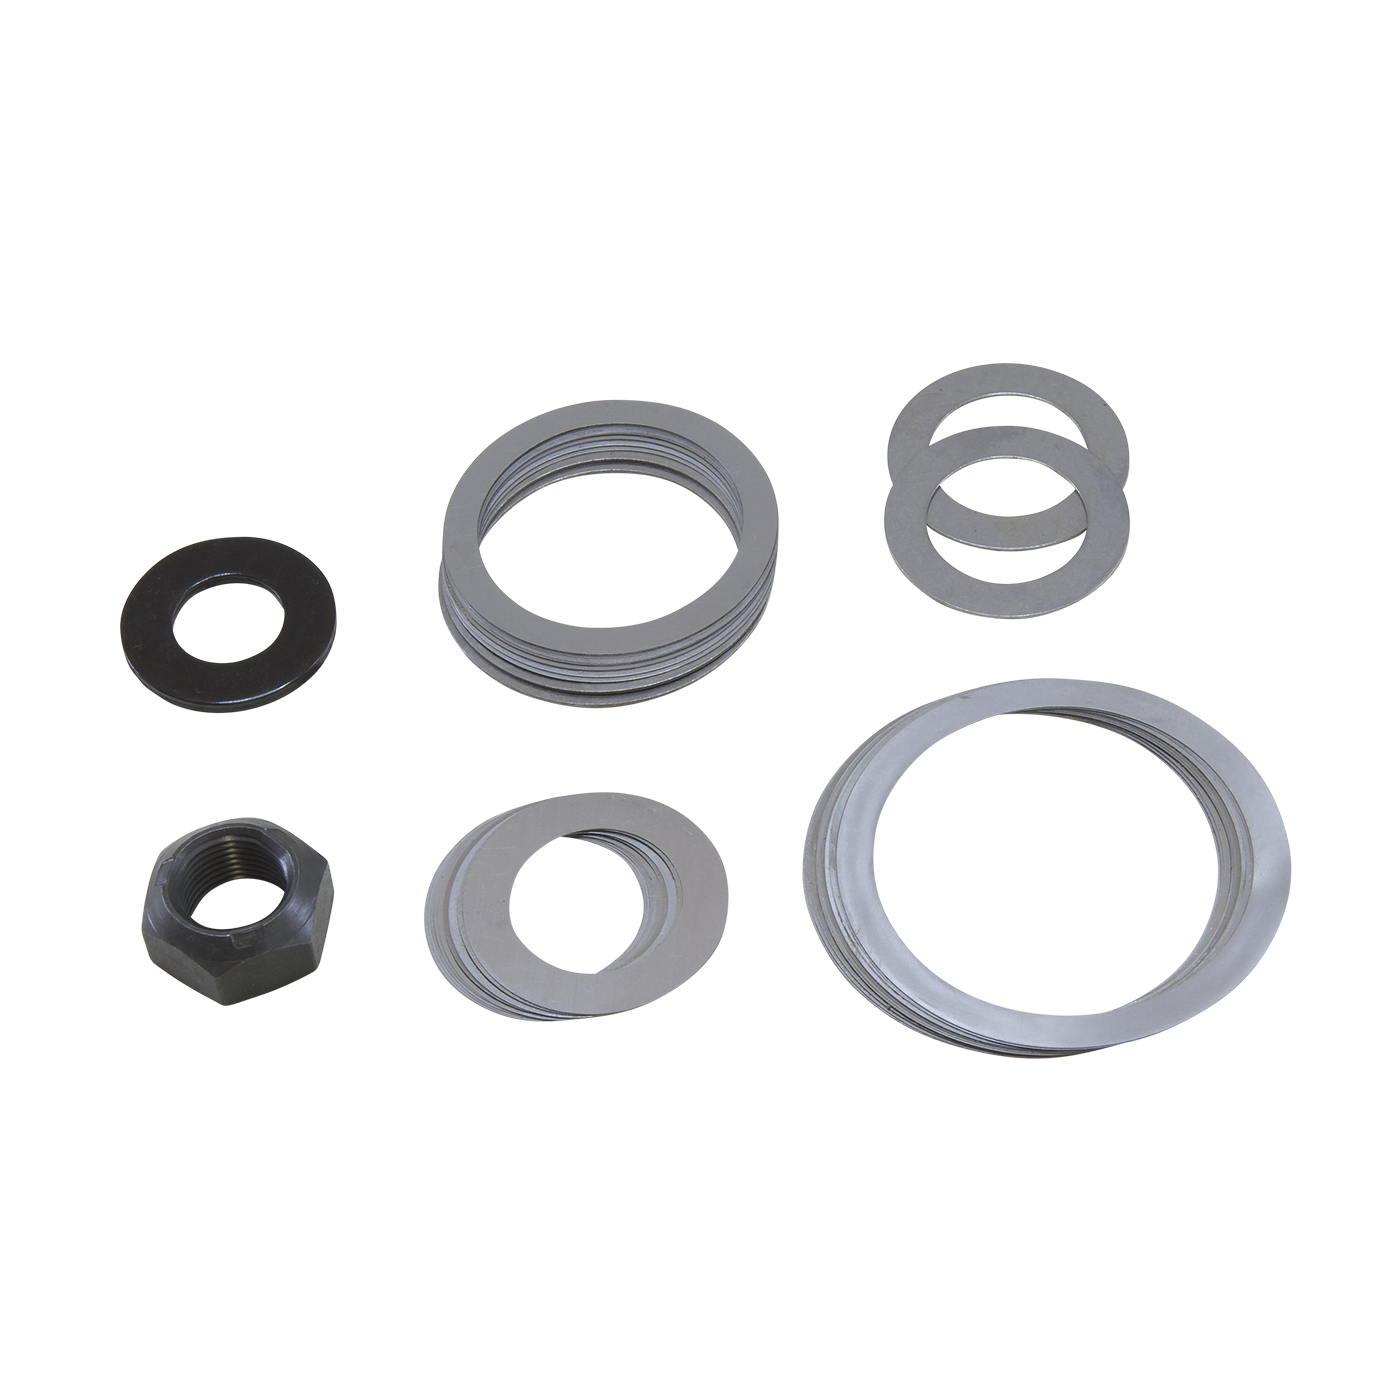 SK 706376 - Dana 44 Complete Shim Kit replacement